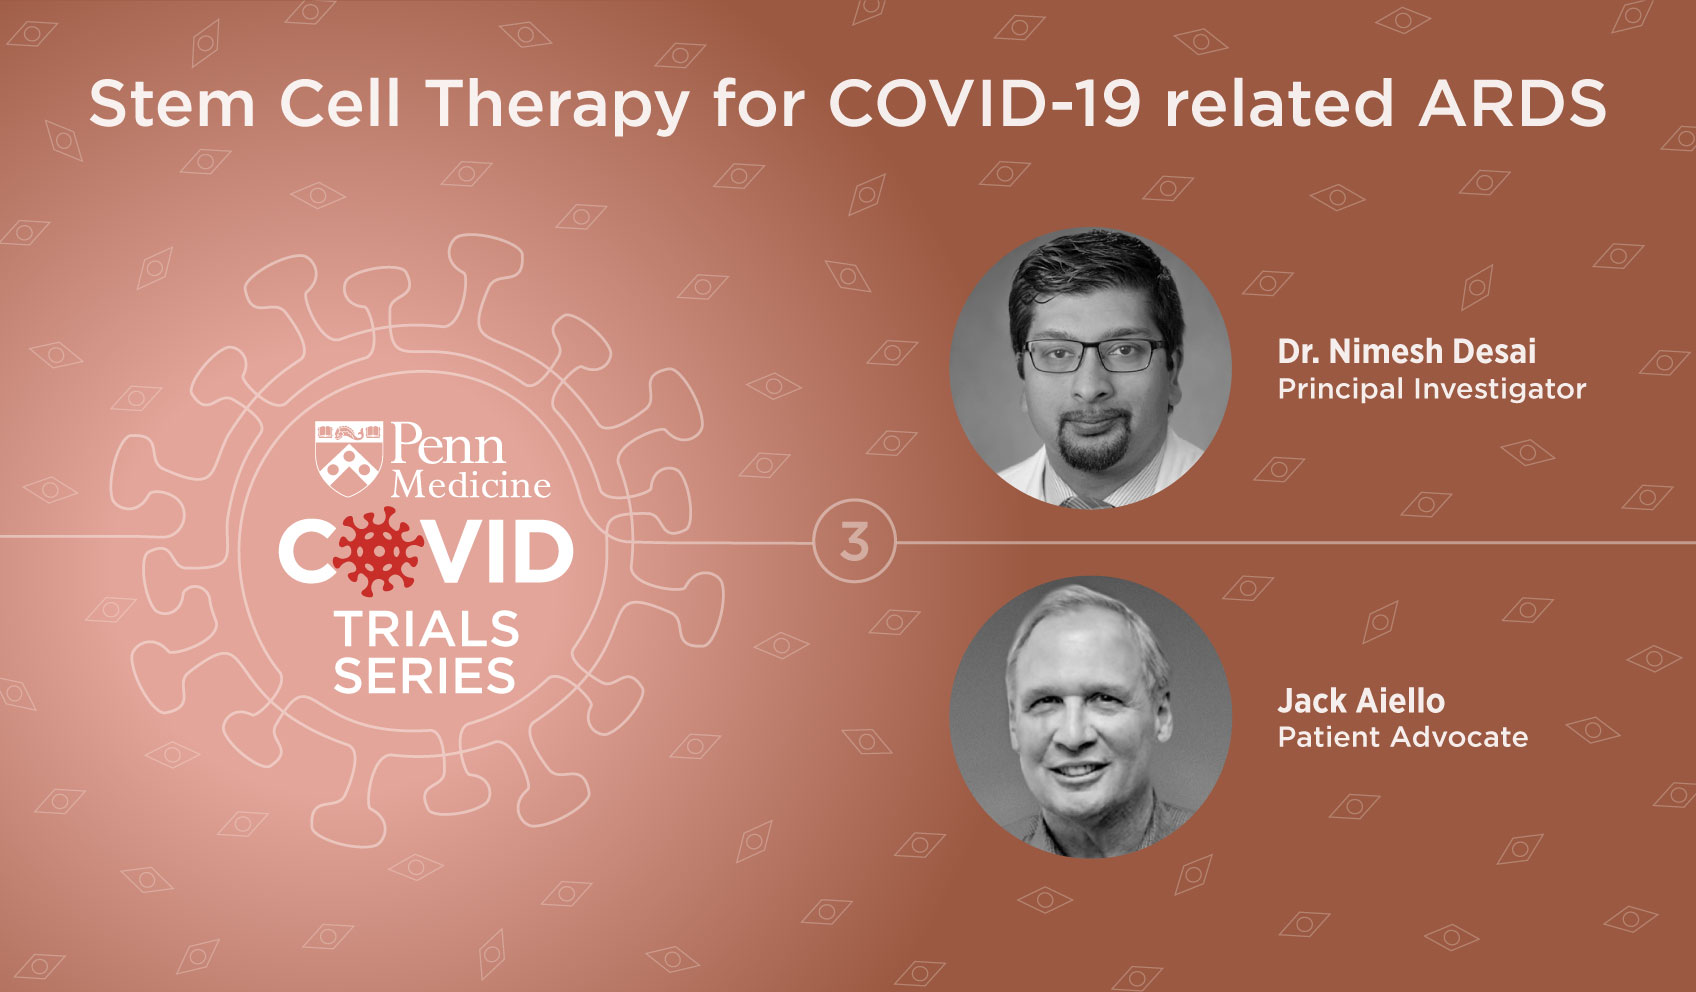 Stem Cell Therapy for COVID-19 related ARDS (Acute Respiratory Distress Syndrome)